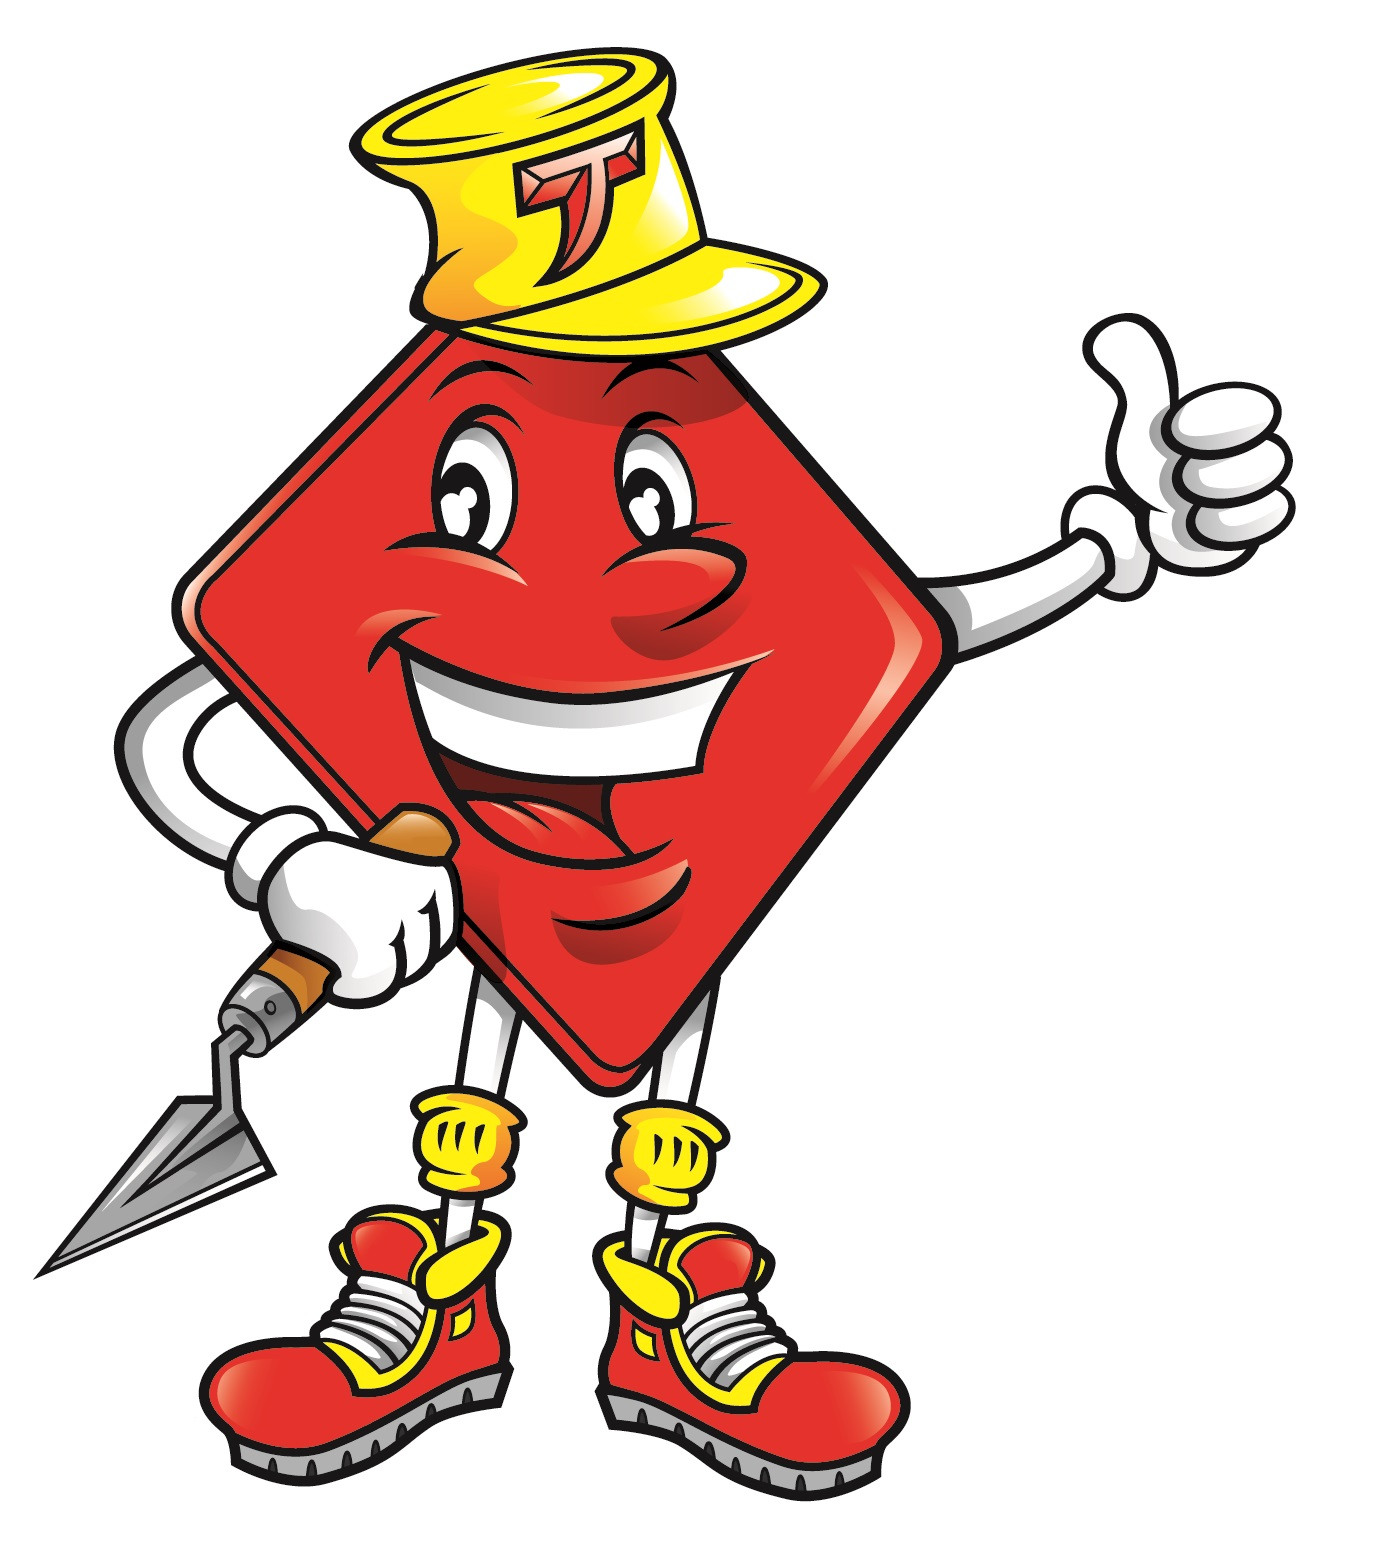 Red Tile Mascot